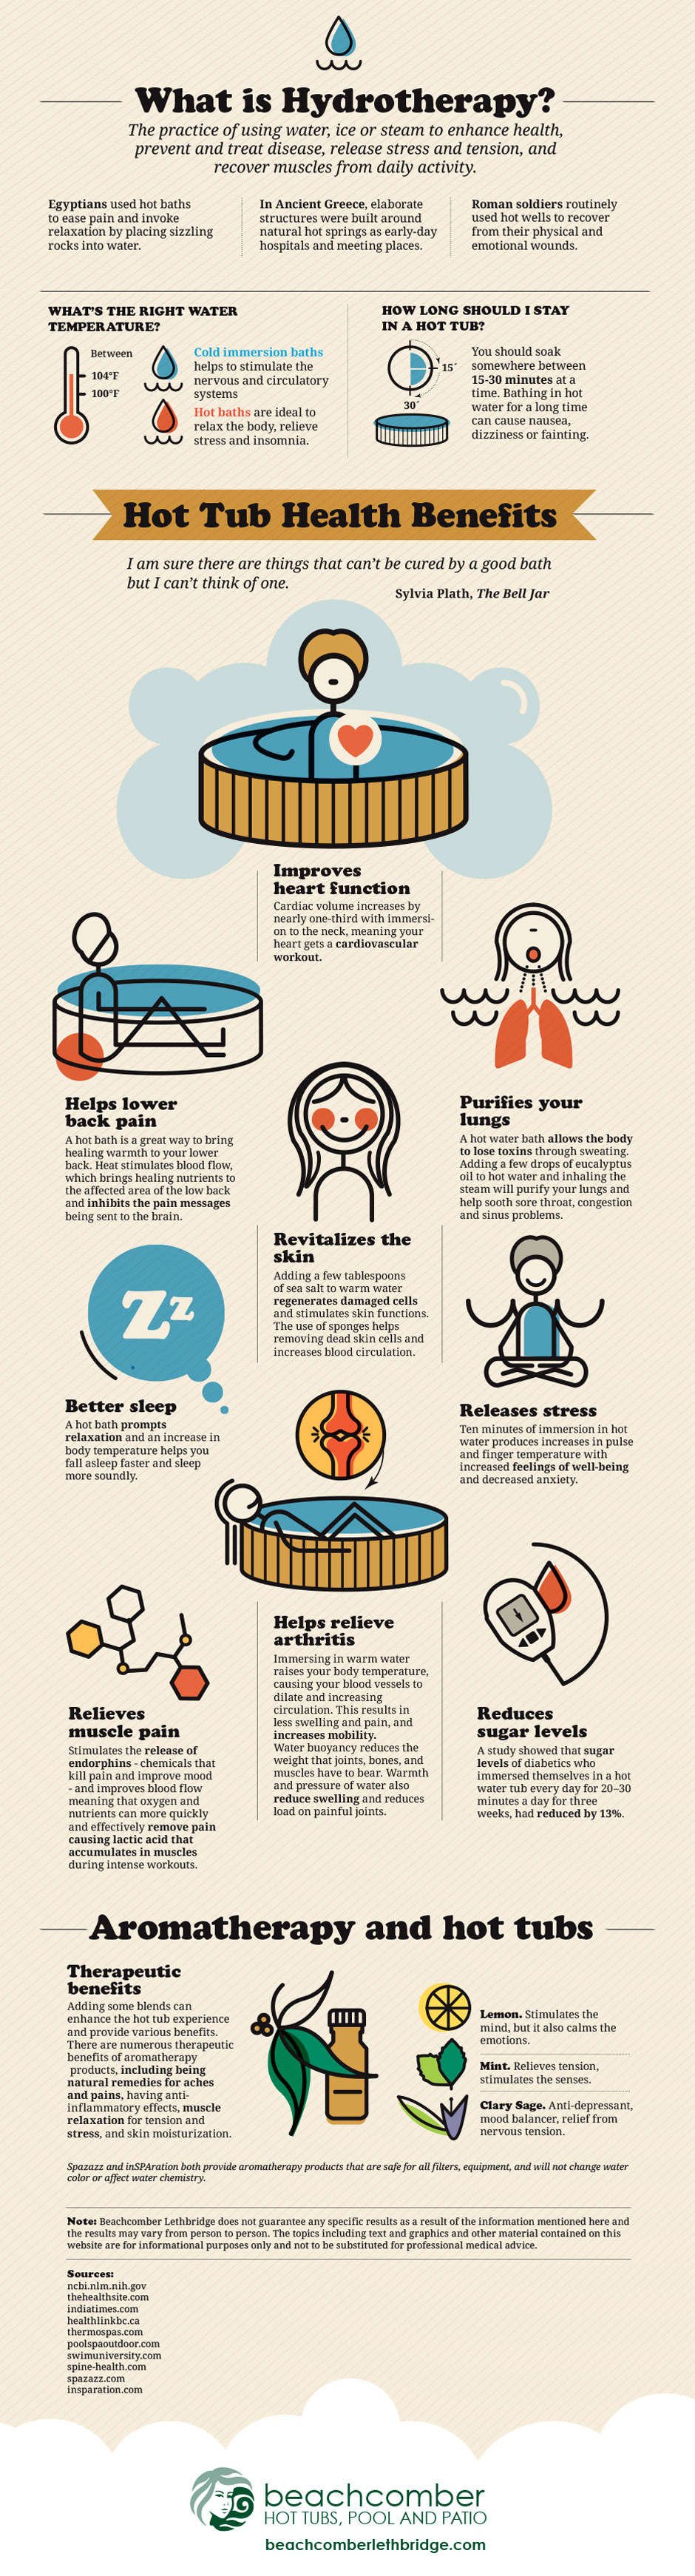 Hot Tub Health Benefits Infographic